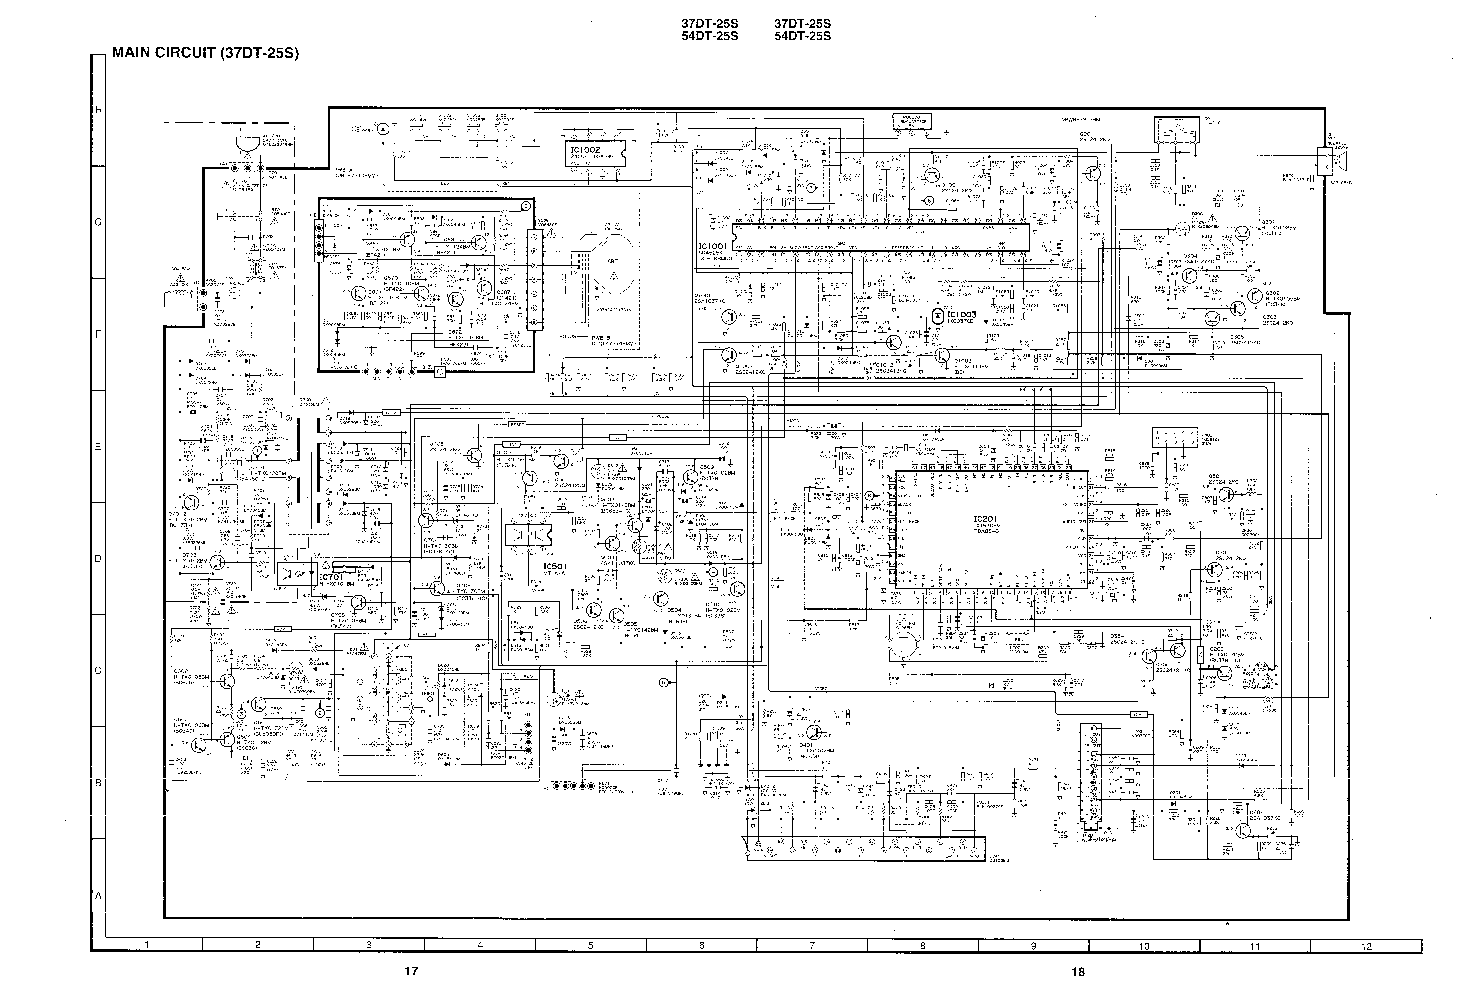 SHARP 37DT25S TV D Service Manual download, schematics